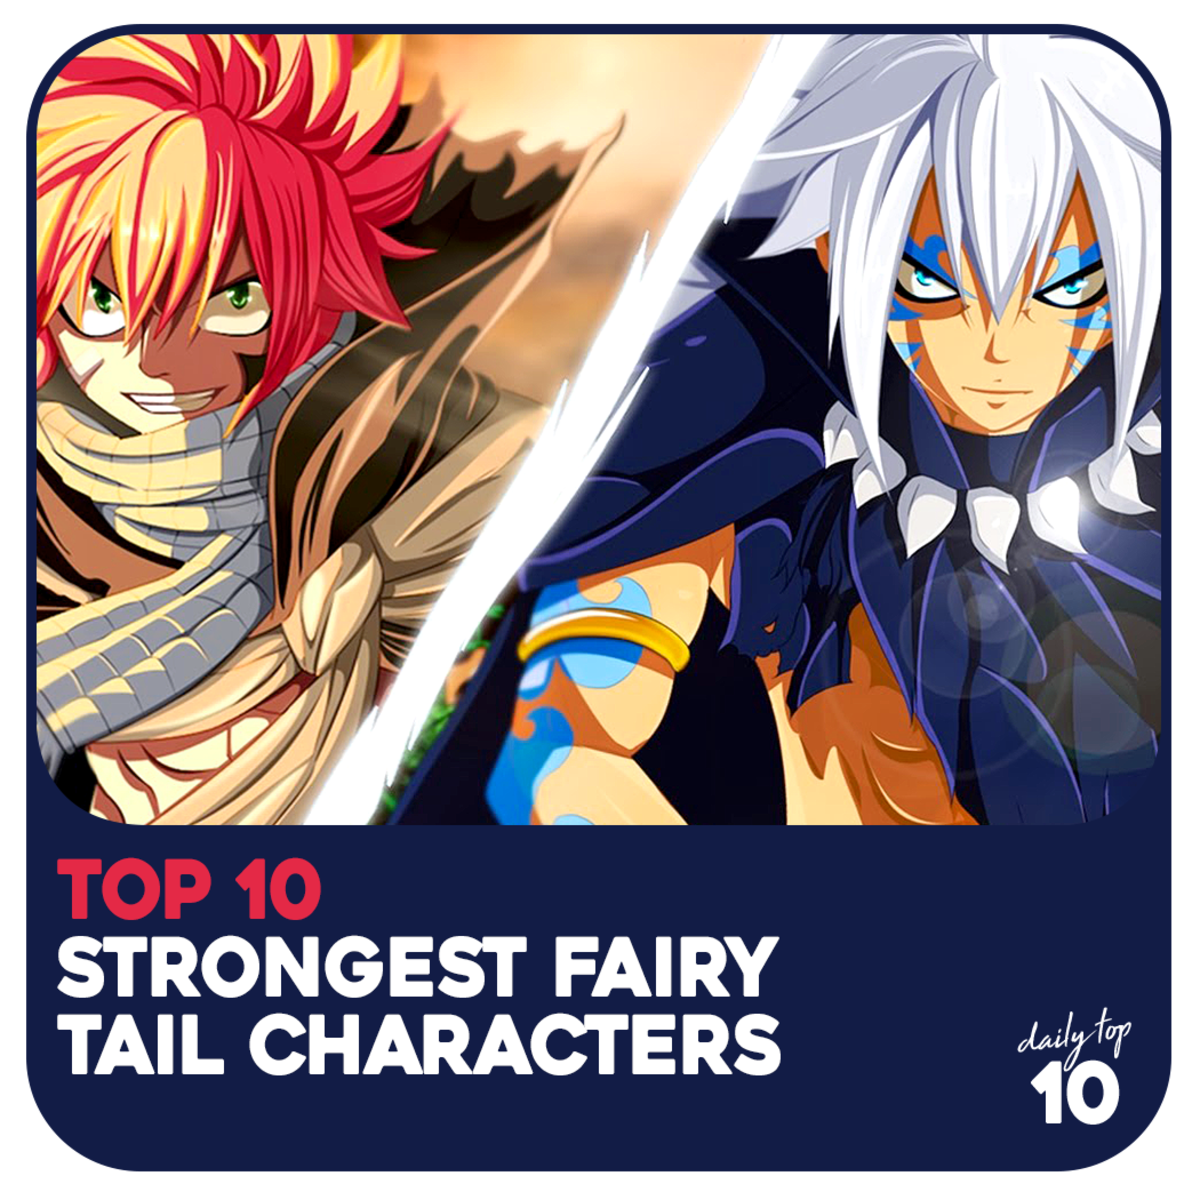 Top 10 Strongest Fairy Tail Characters of All Time